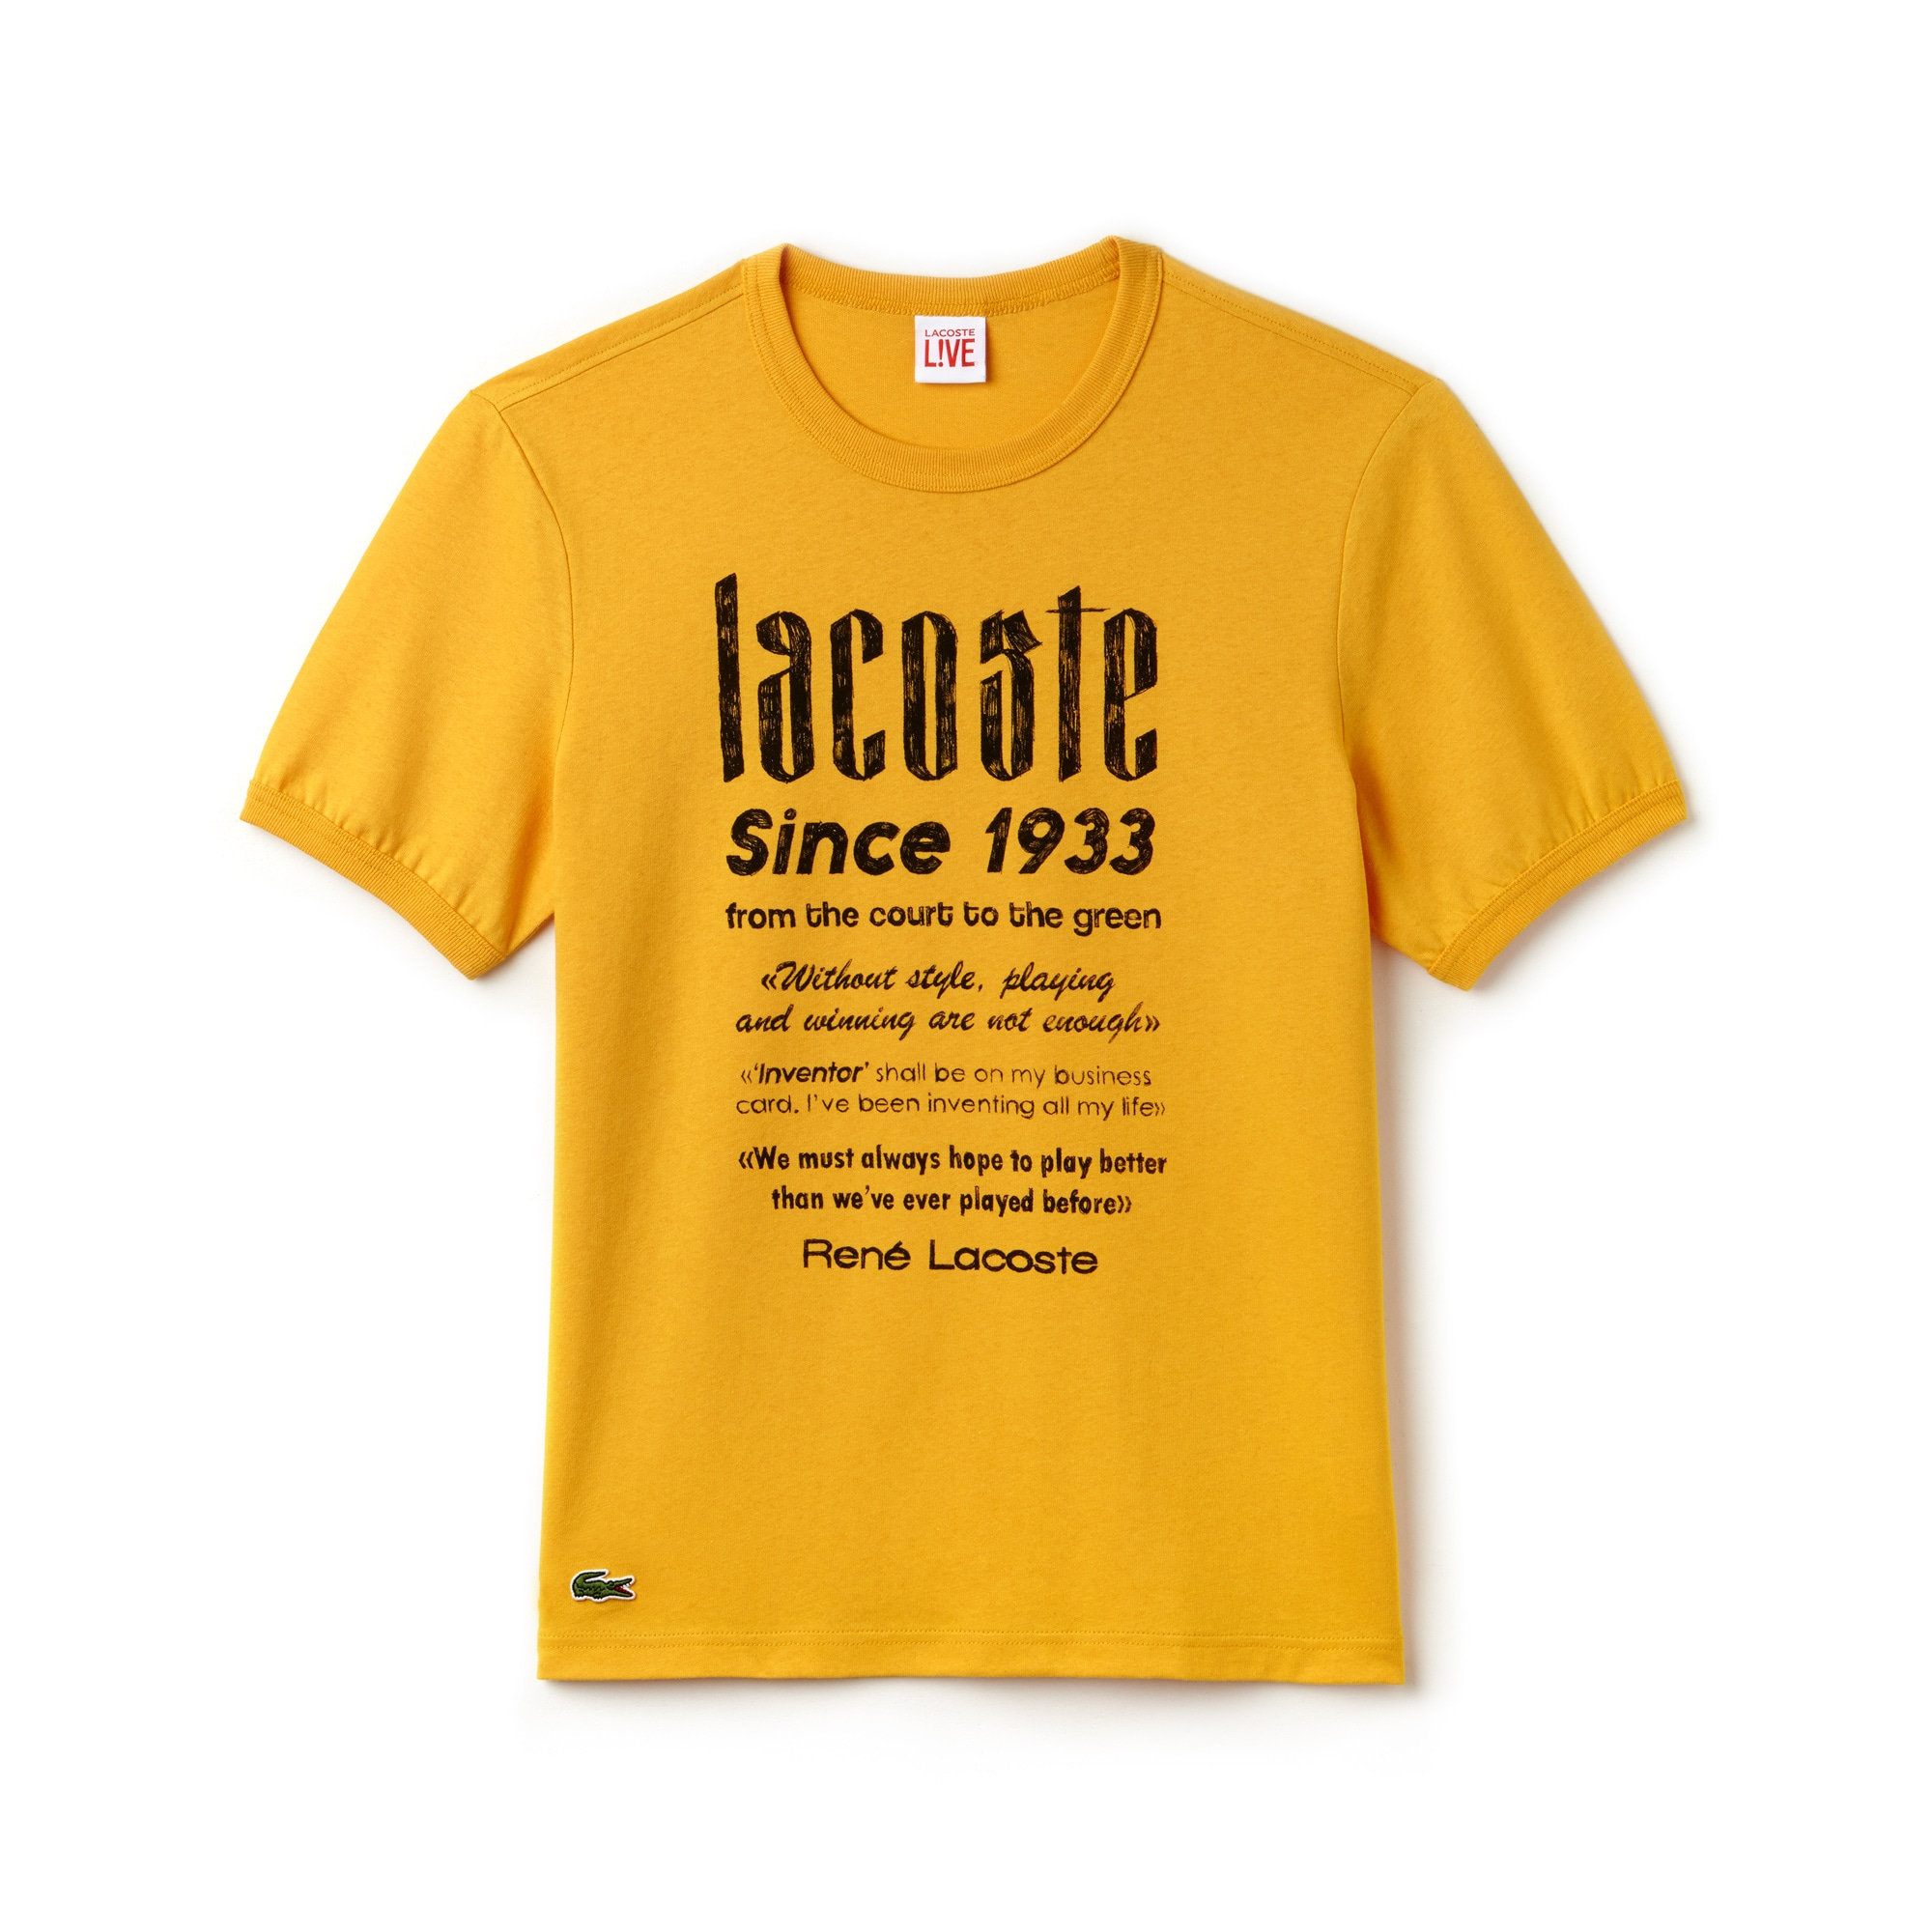 Men's Lacoste LIVE Crew Neck Heritage Print Cotton Jersey T-shirt